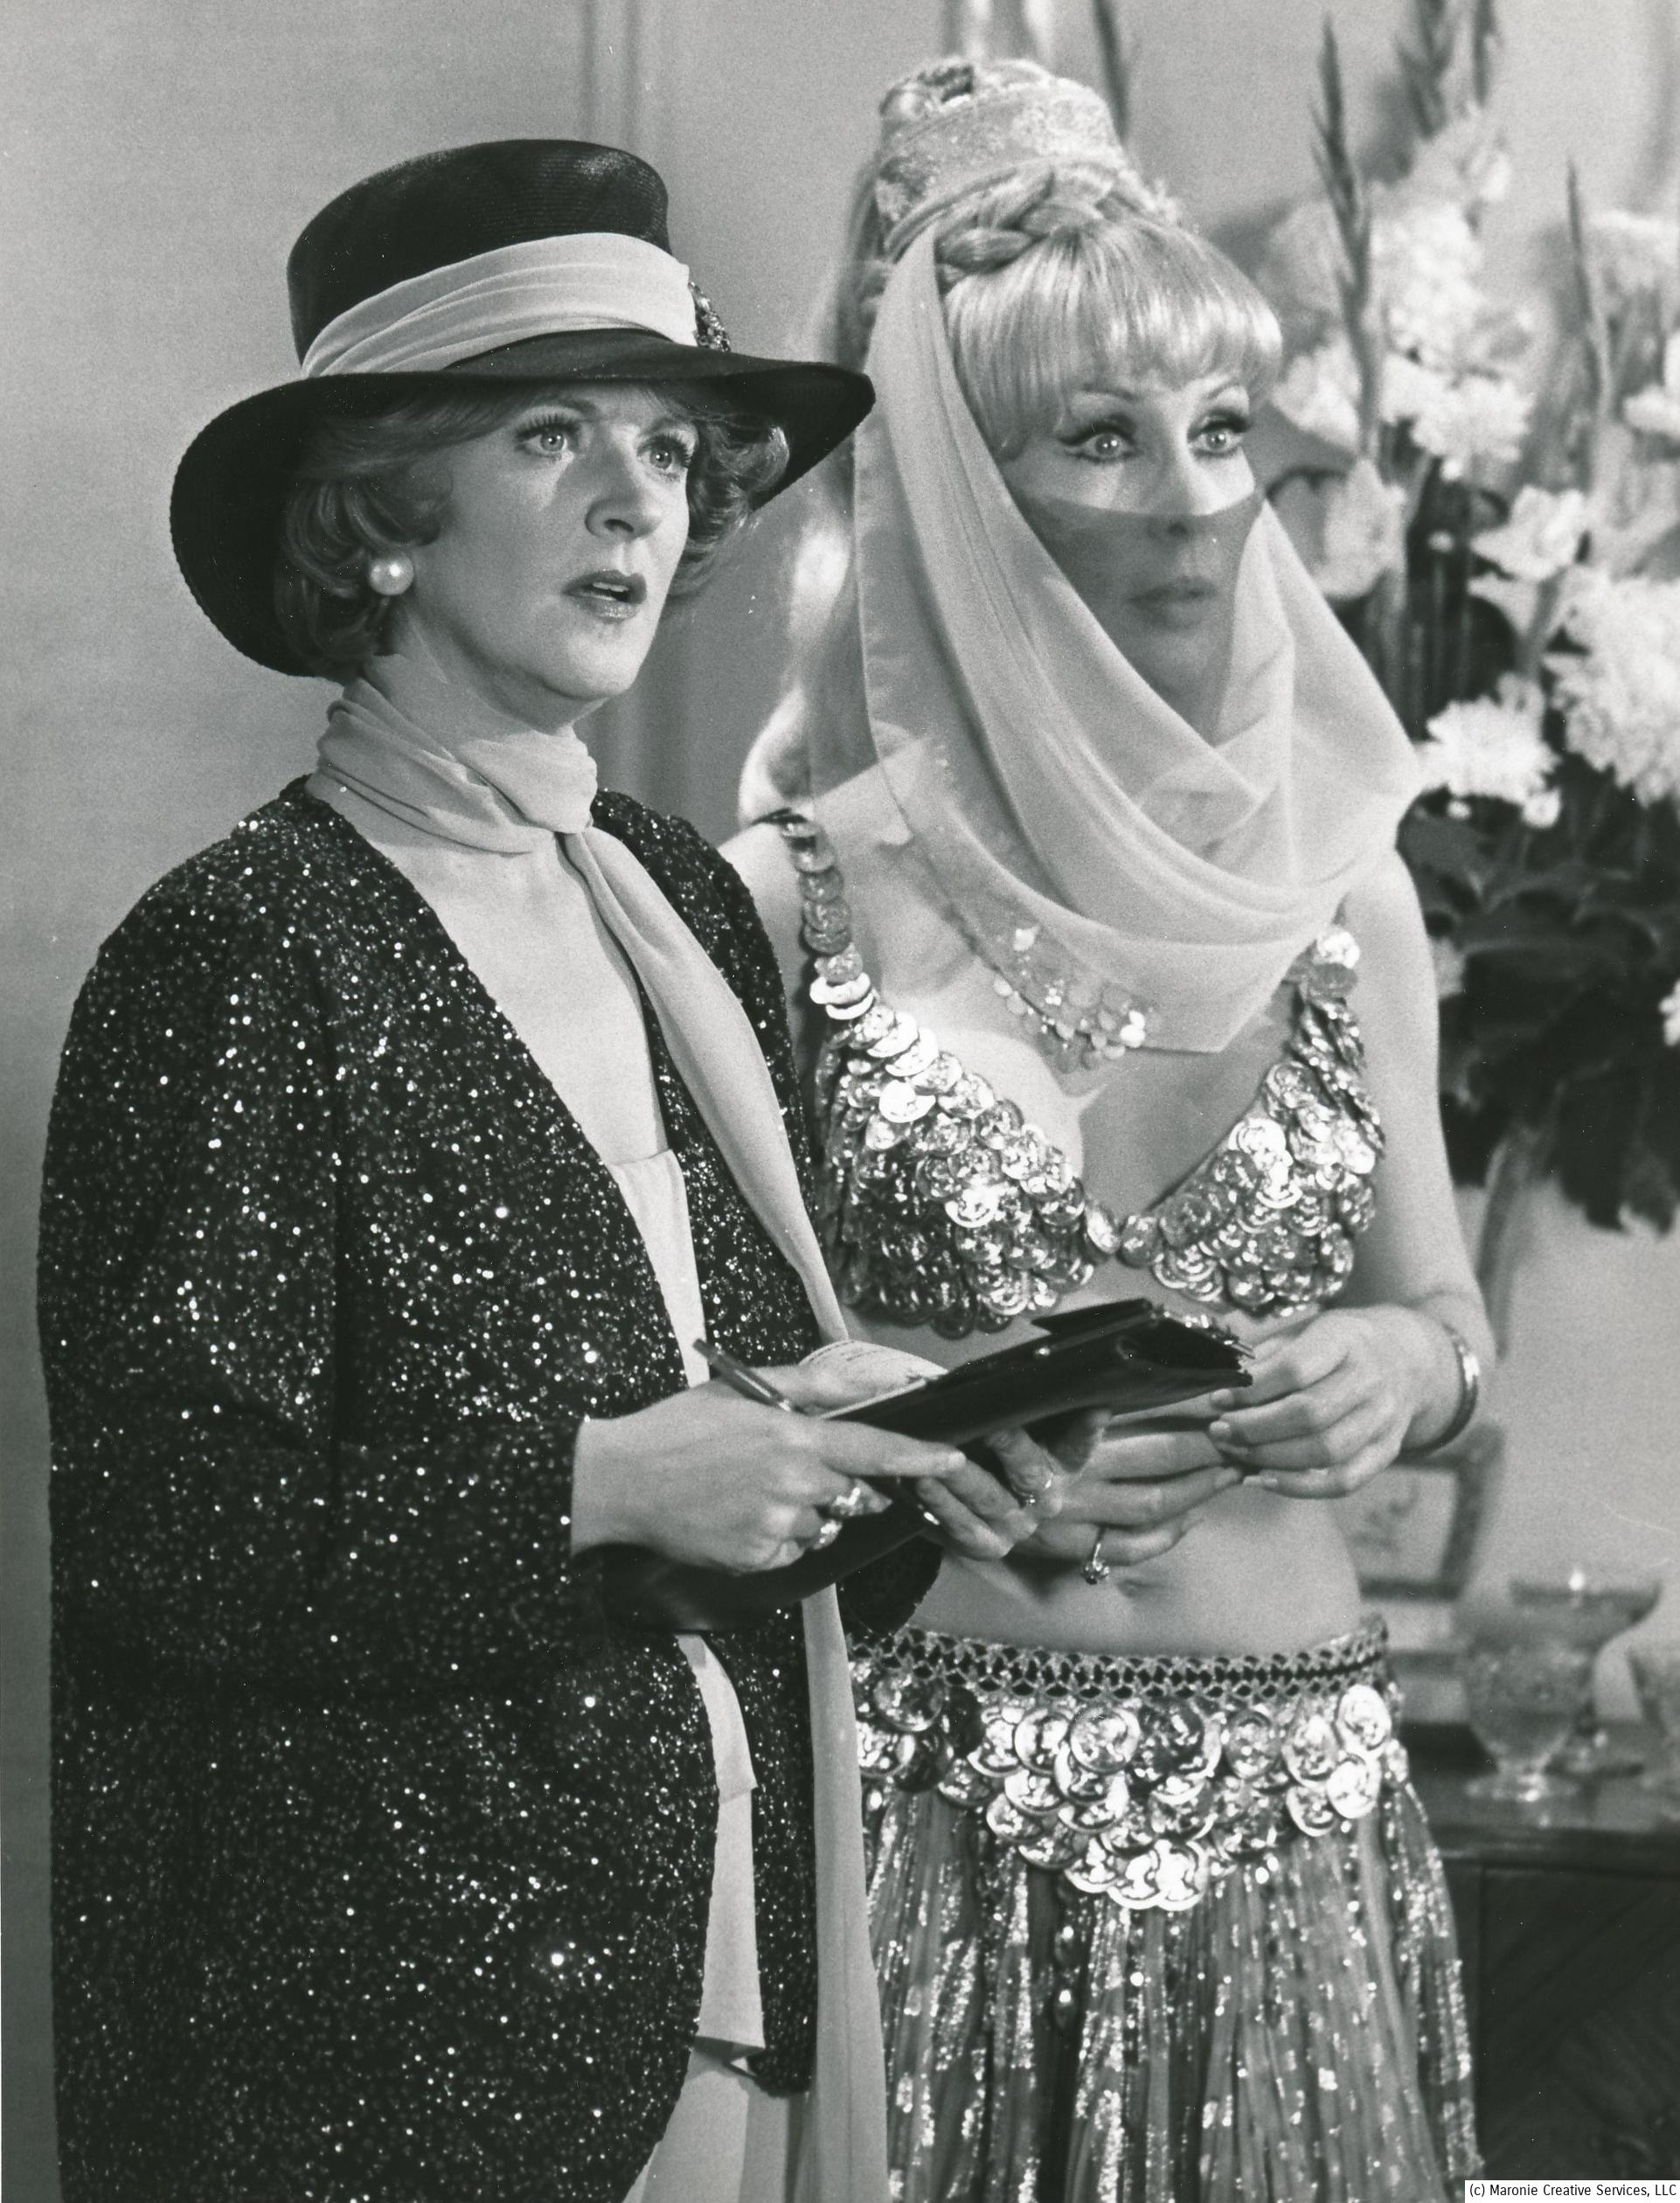 When some actors finish a role, they don't want to be reminded of it. Eden always appreciated her sitcom success and embraced her Jeannie character. Here she is in a Harper Valley episode where she masqueraded as a visiting princess---but we all knew it was really Jeannie!  That's Fannie Flagg on her left. (c) NBC